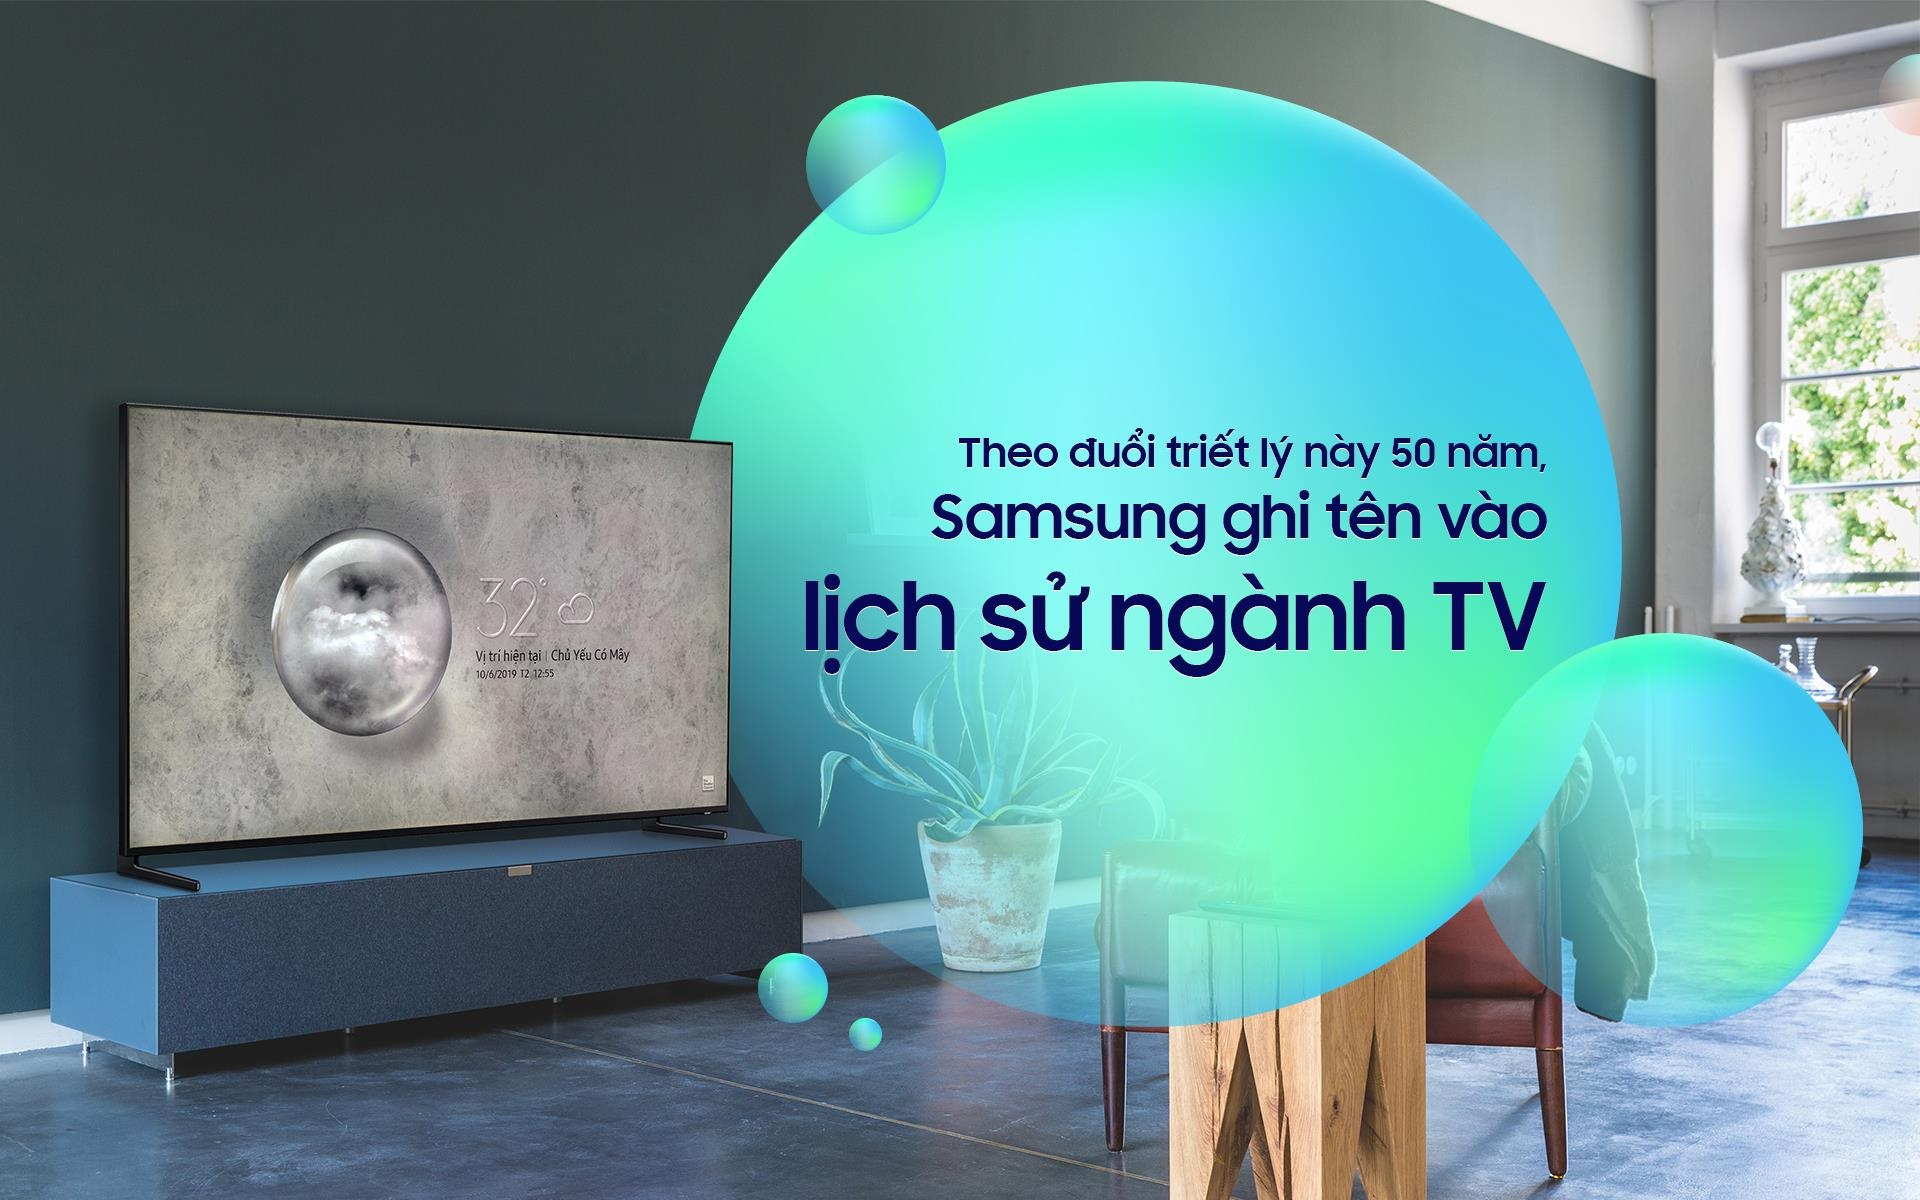 Theo duoi triet ly nay 50 nam, Samsung ghi ten vao lich su nganh TV hinh anh 2